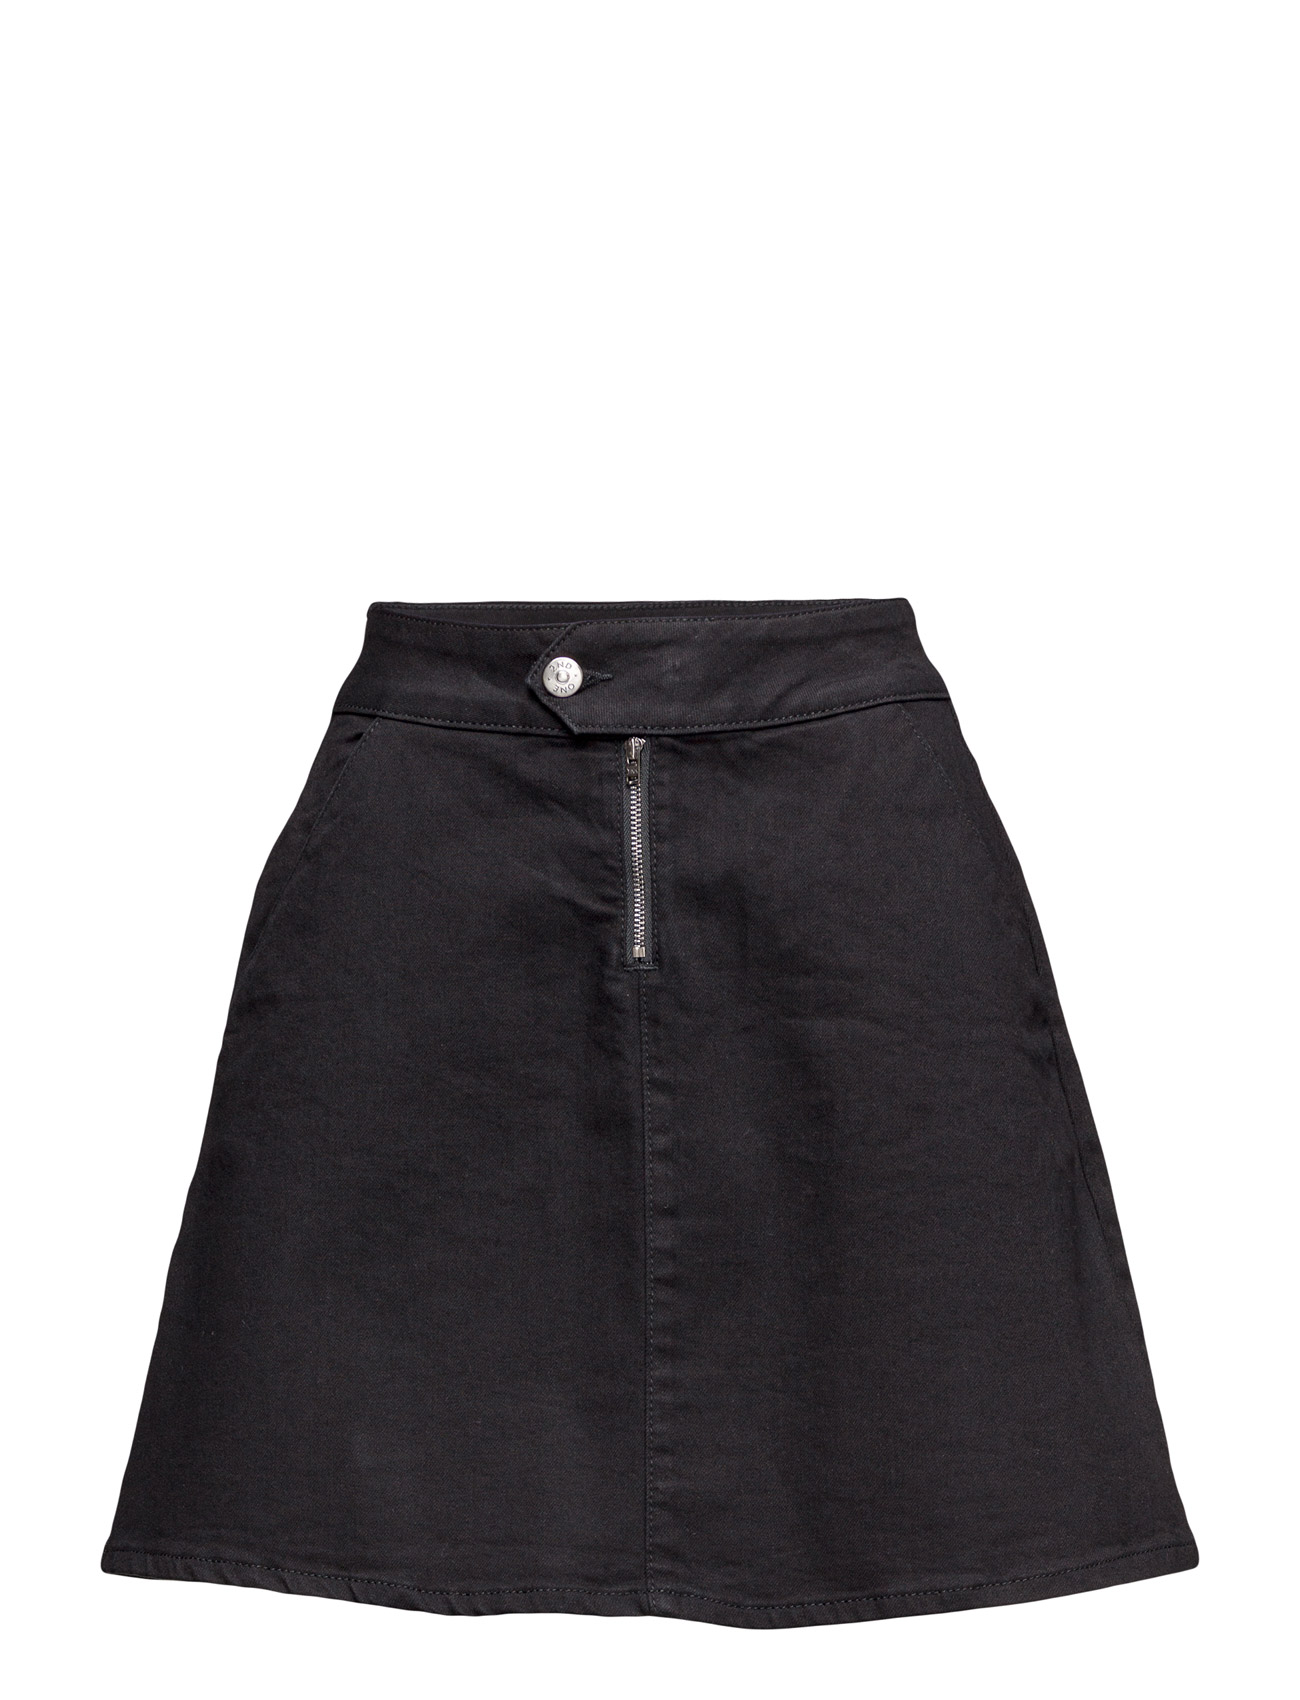 Jessie 842 Black, Skirt 2nd One Nederdele til Kvinder i Sort